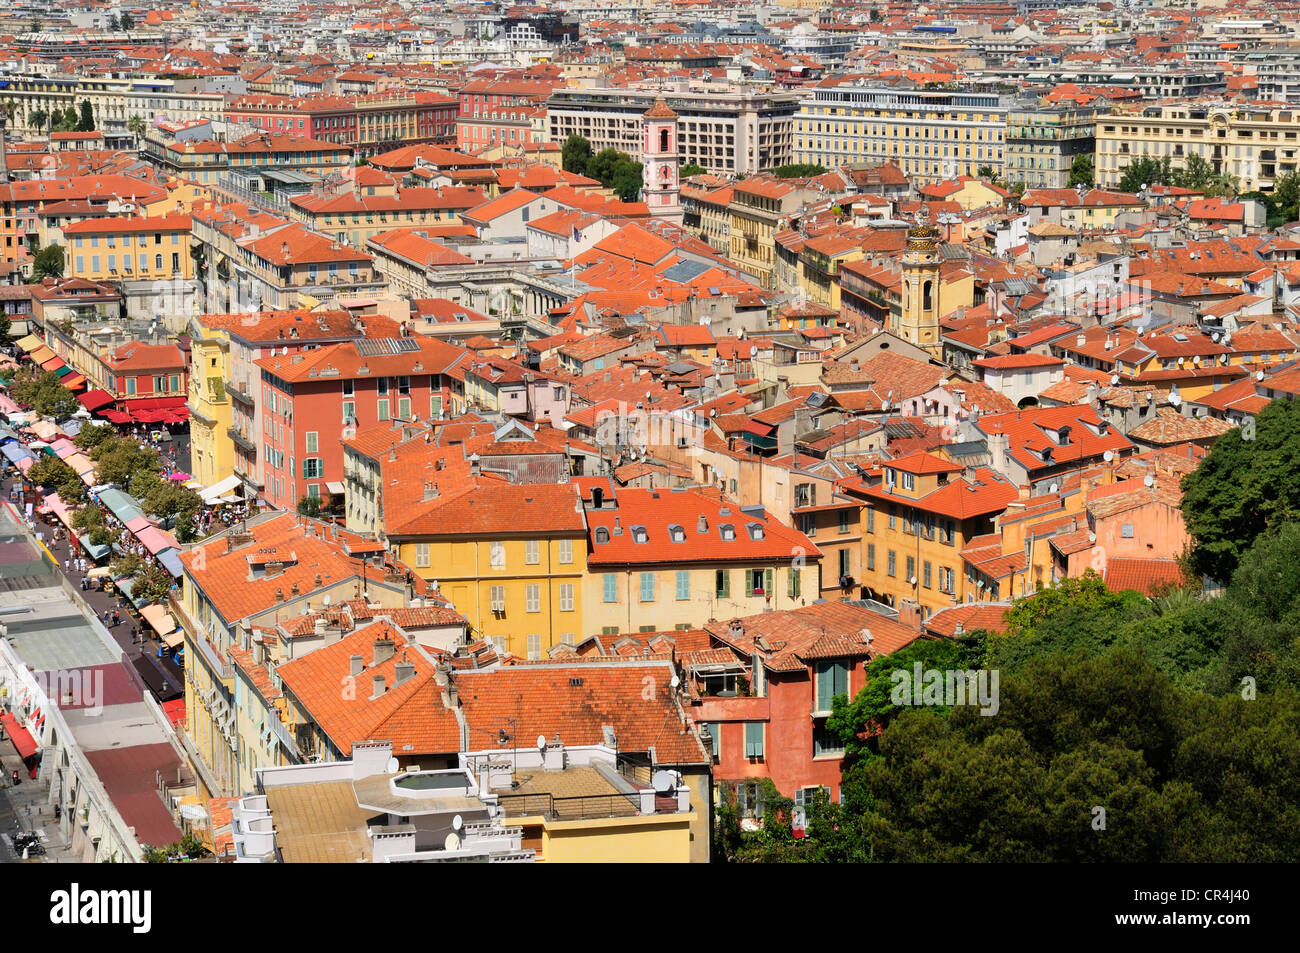 View over Nice, Nizza, Alpes Maritimes, Provence, France, Europe - Stock Image